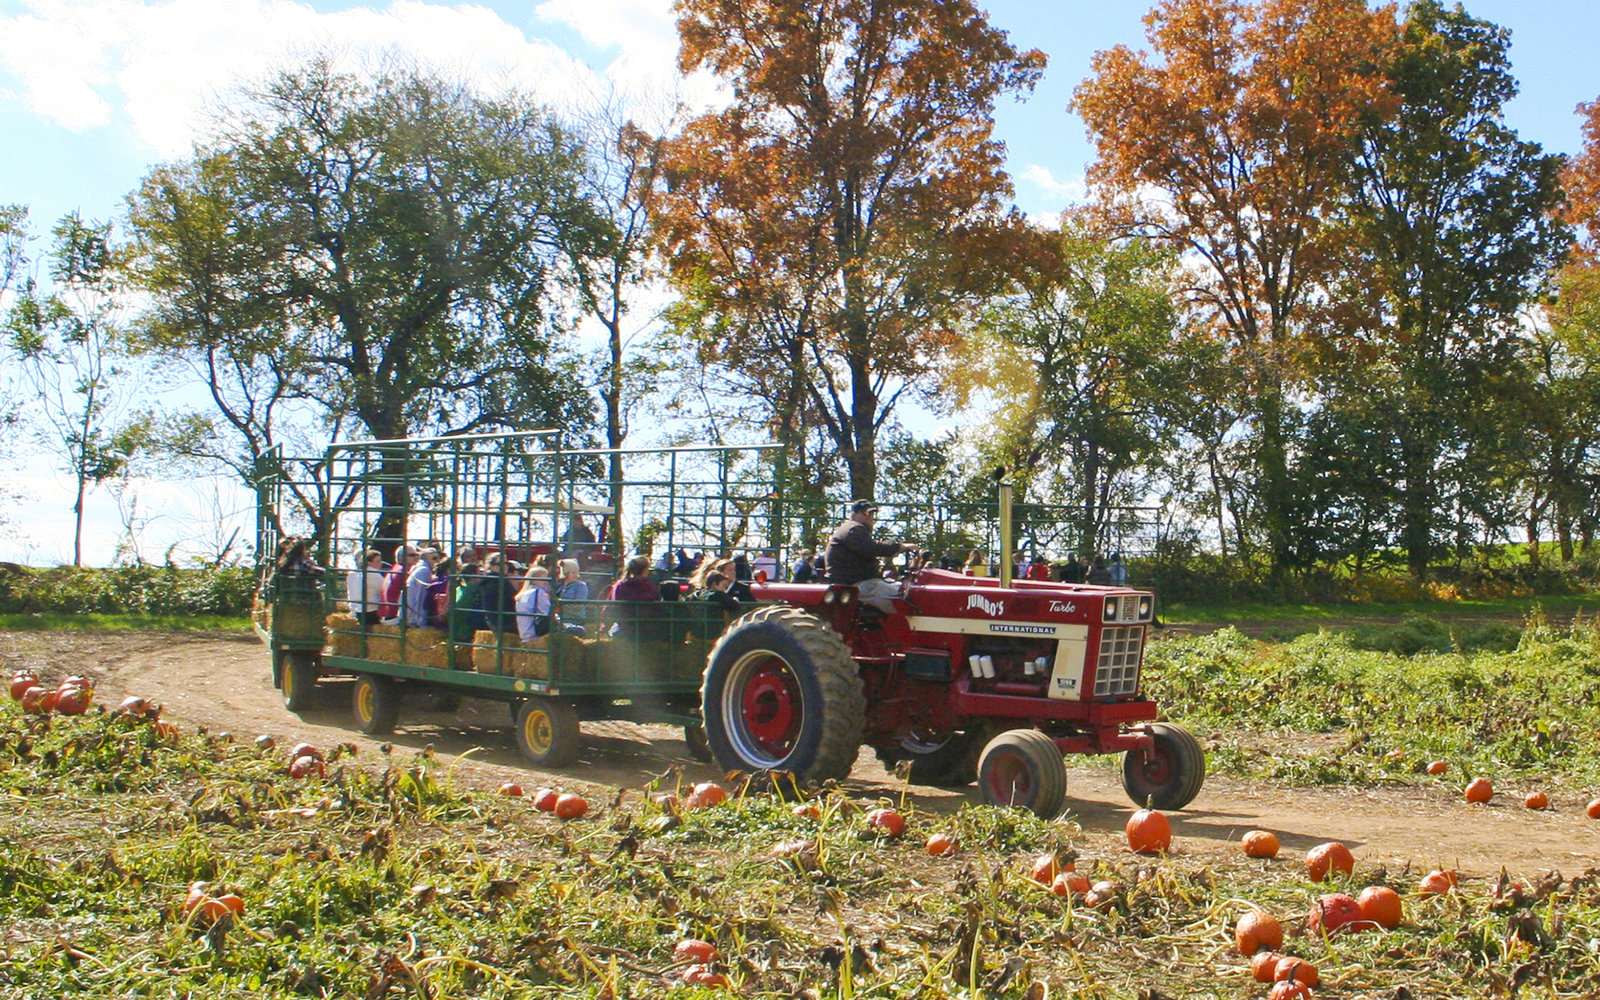 Jumbo's Pumpkin Patch Farm